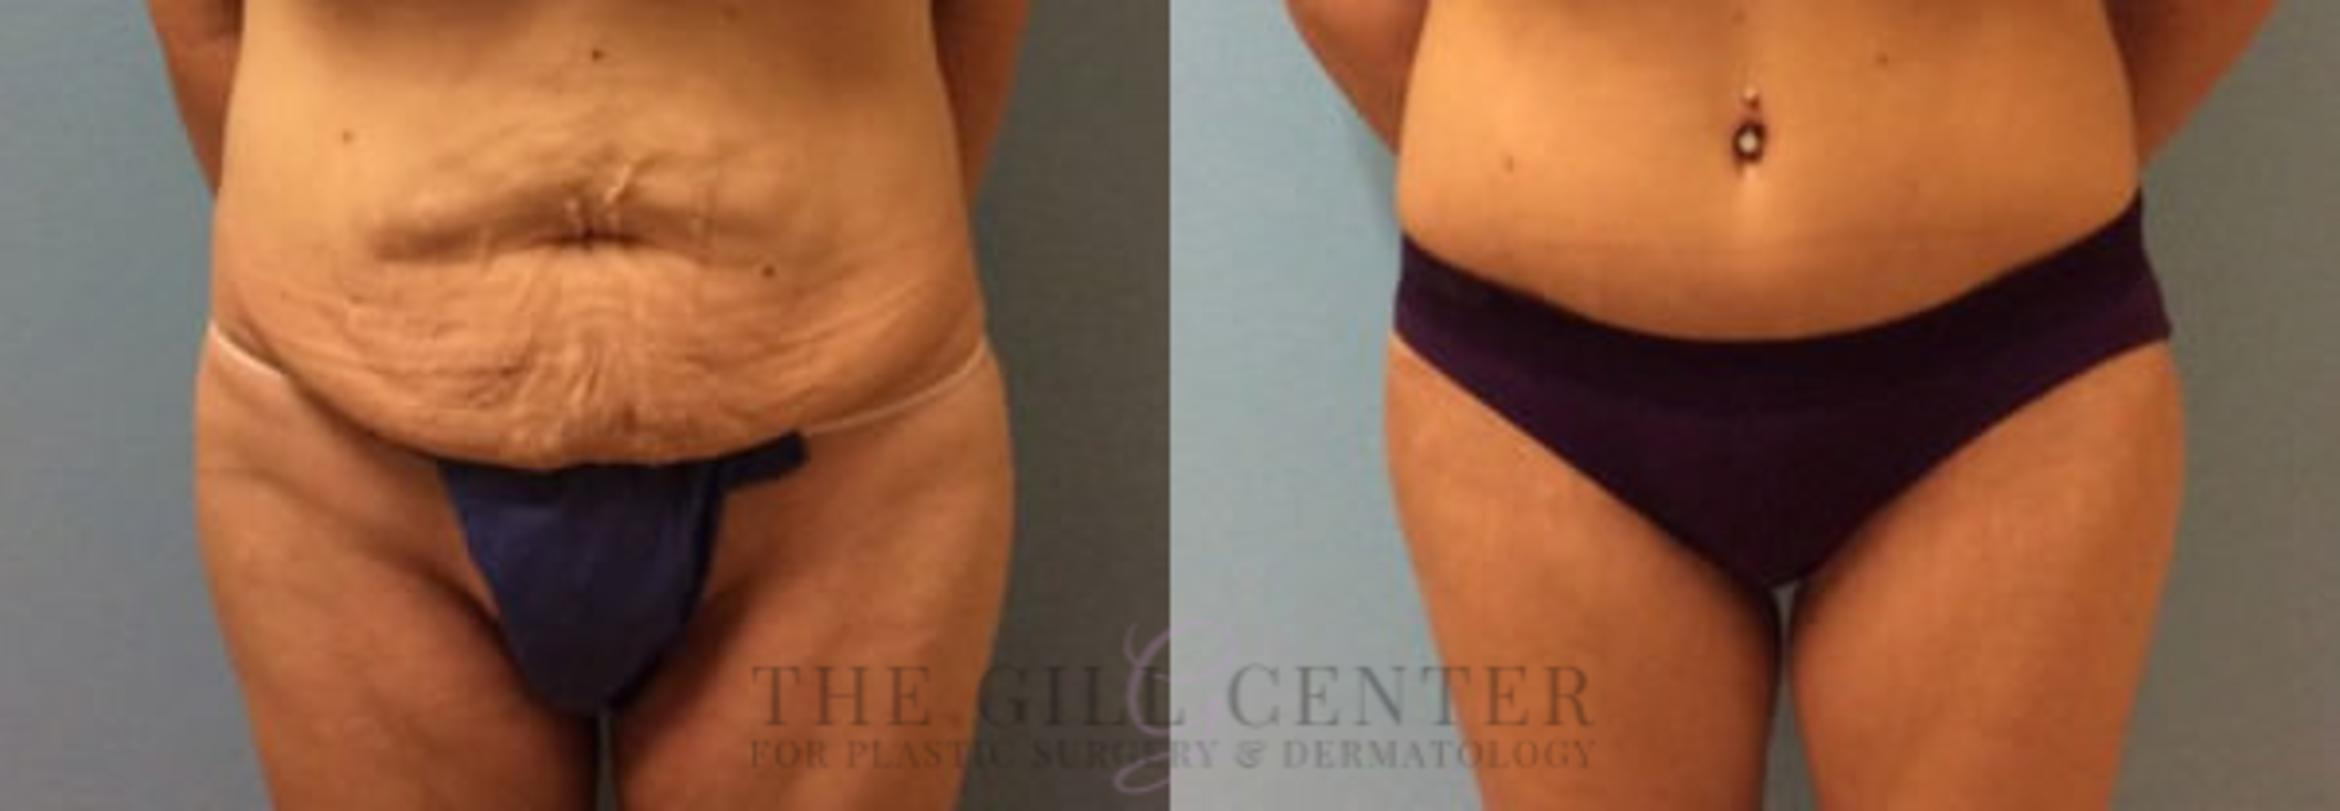 Thigh Lift Case 163 Before & After Front | Shenandoah, TX | The Gill Center for Plastic Surgery and Dermatology